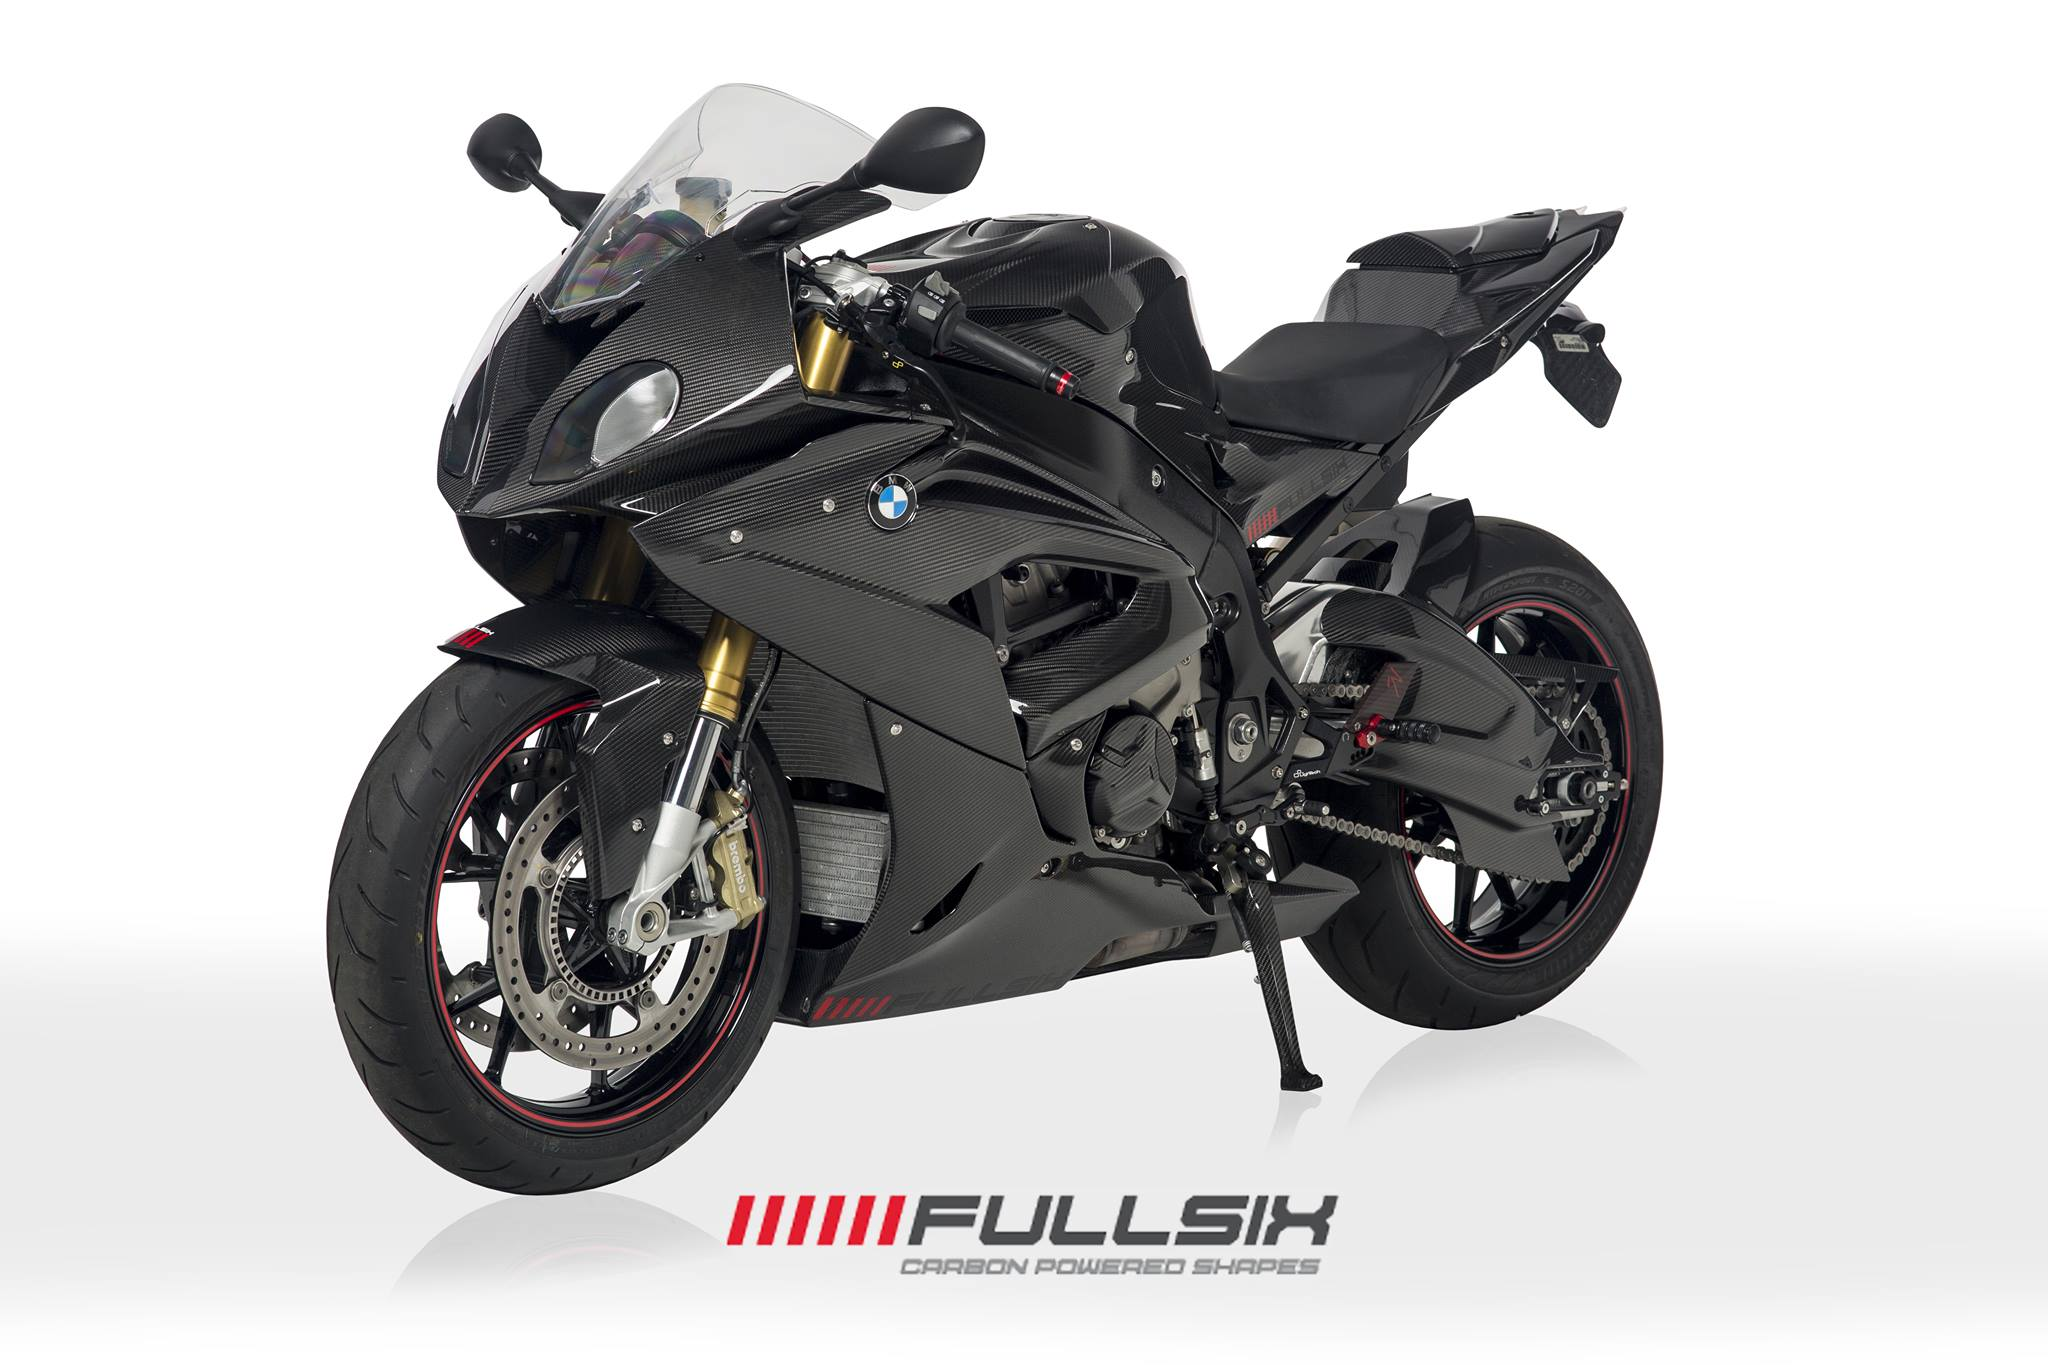 The Ultimate Advantages Of S1000rr Carbon Fairings